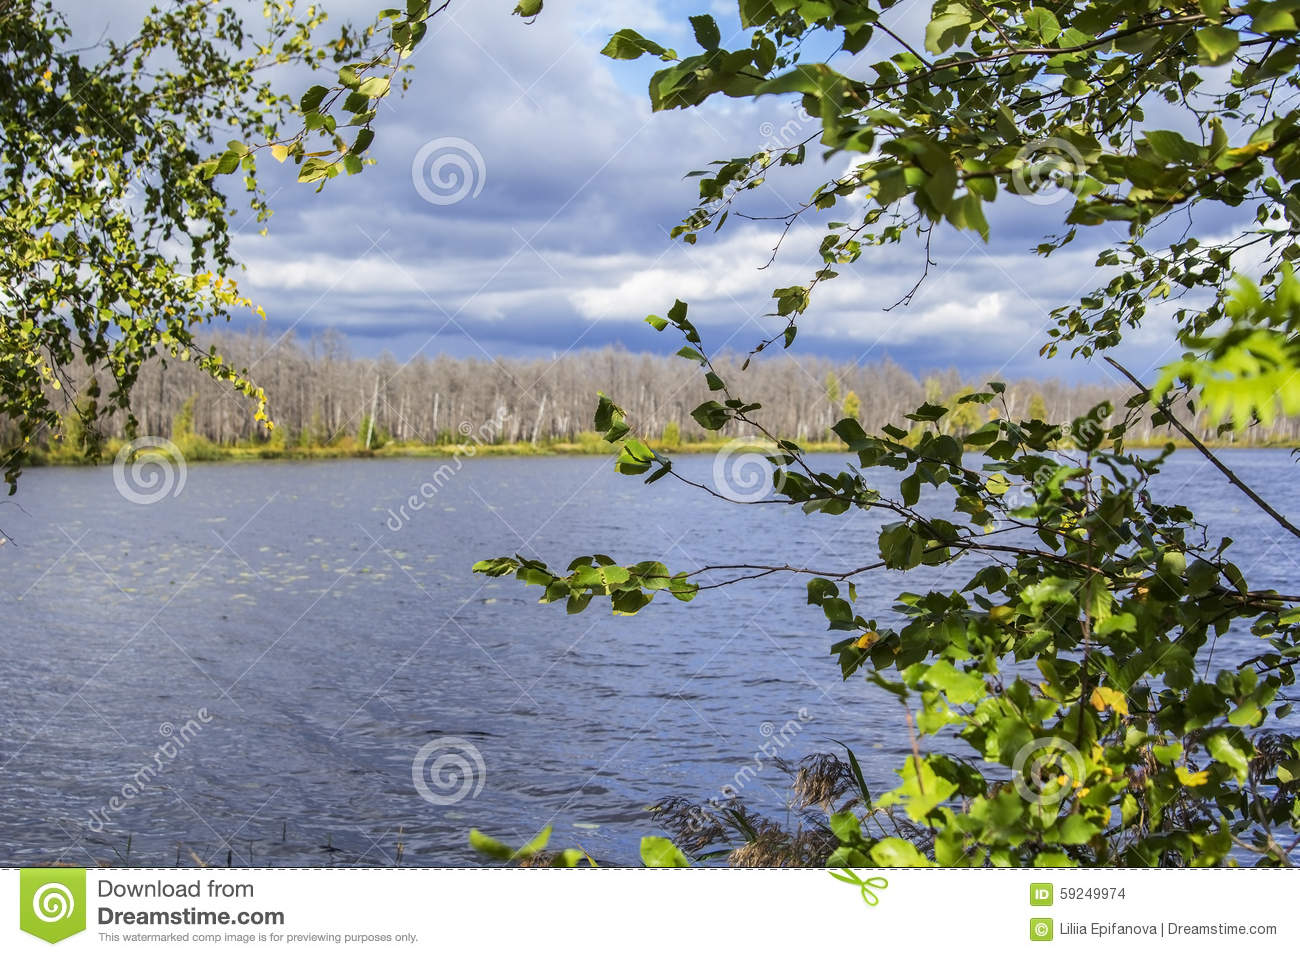 Blurred background forest lake framed yellowing leaves in cloudy weather